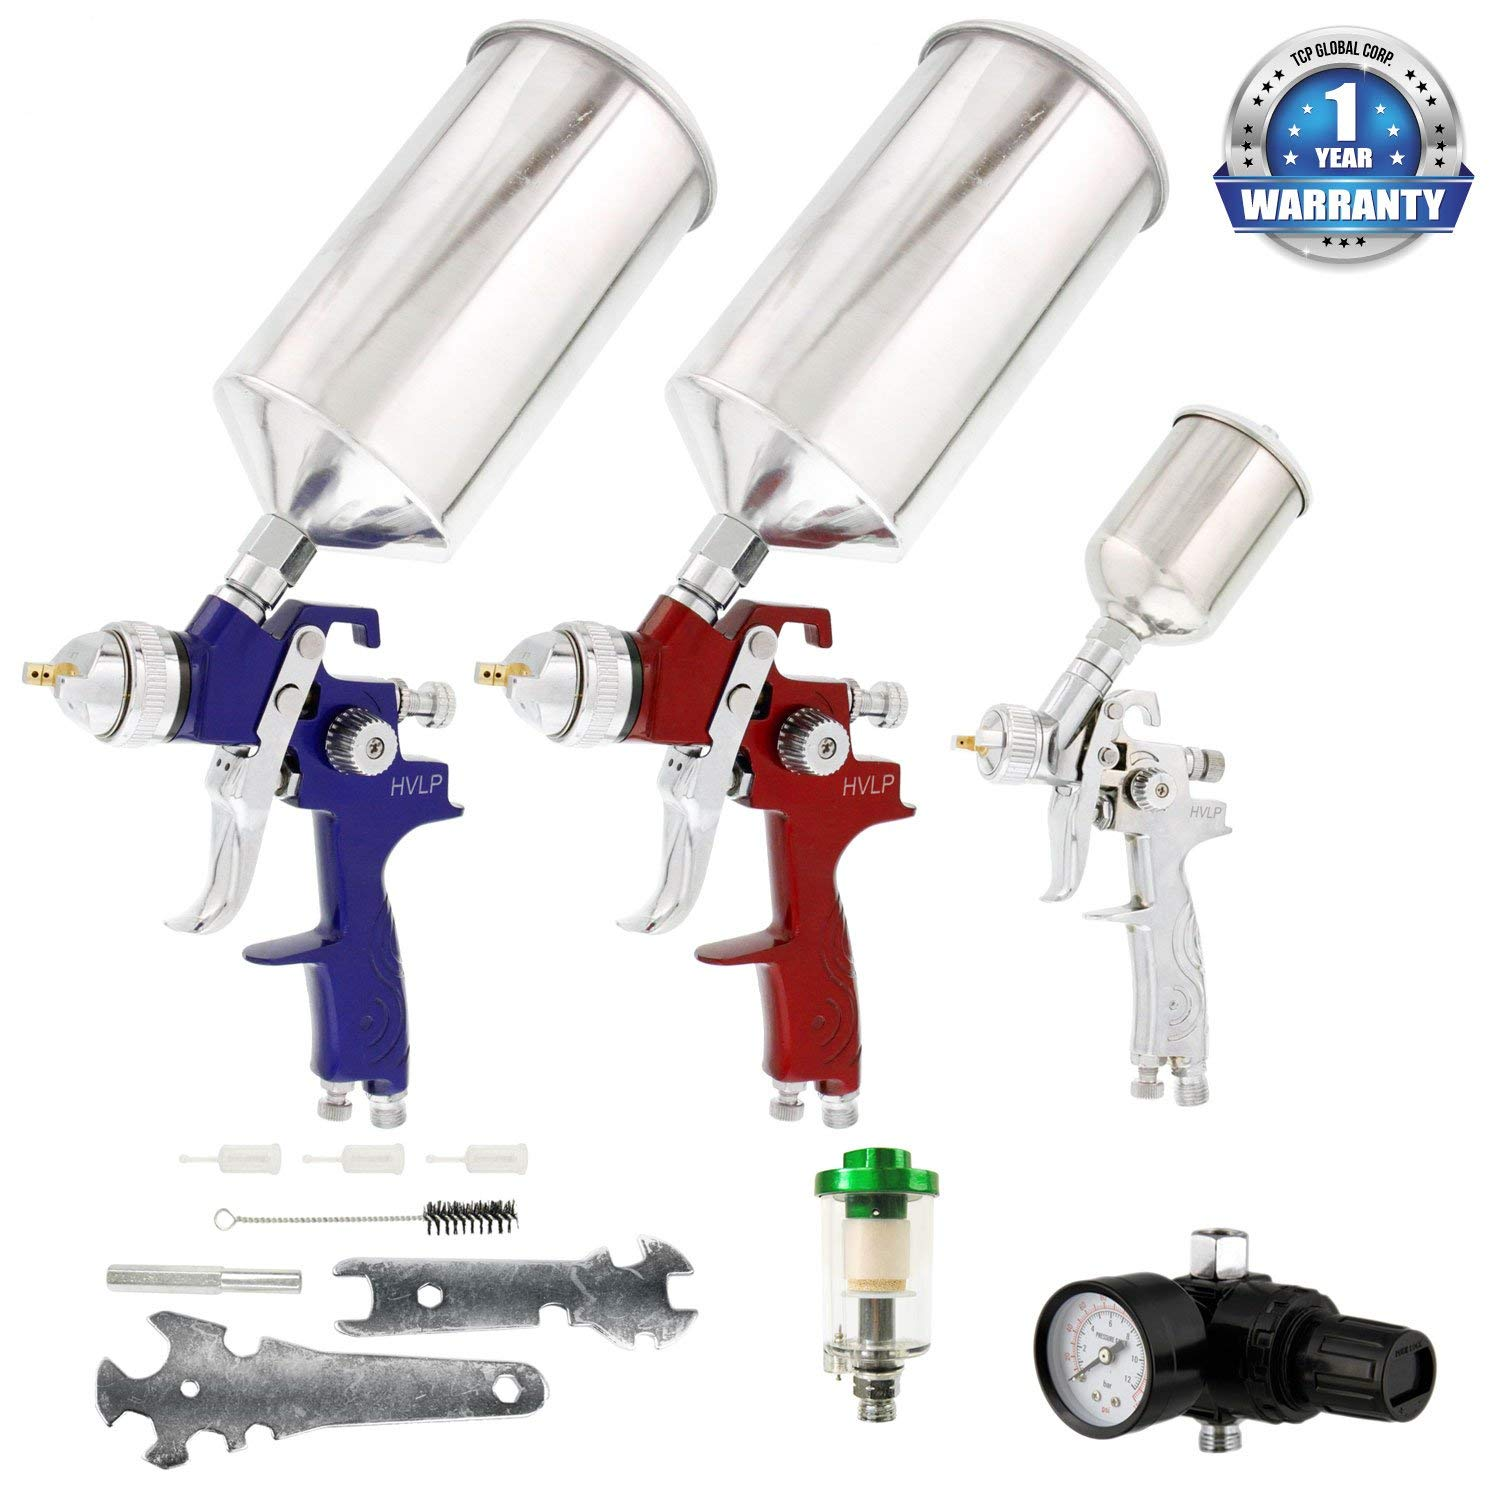 TCP Global Brand HVLP Spray Gun Set